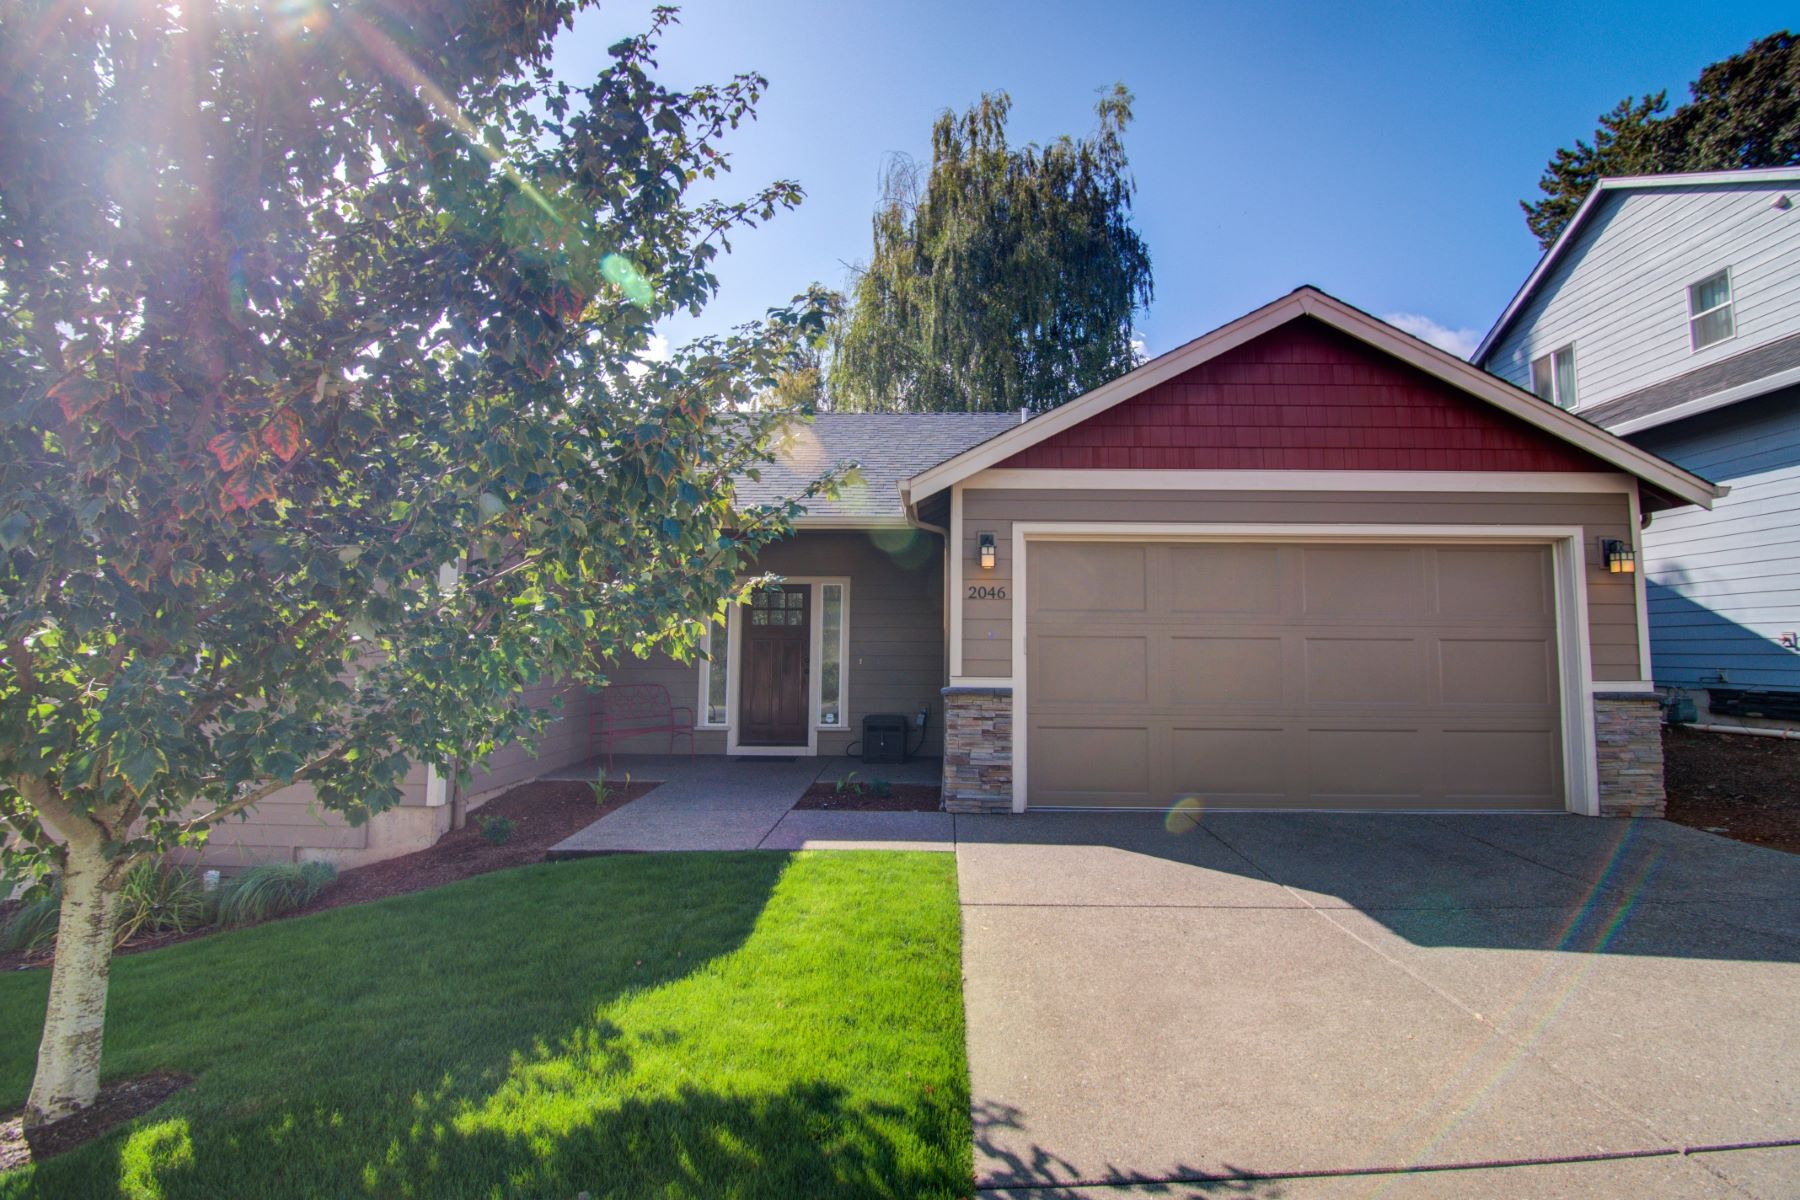 Single Family Homes for Active at Exquisite 1 Level in NW Salem 2046 NW Ullman Ave Salem, Oregon 97304 United States